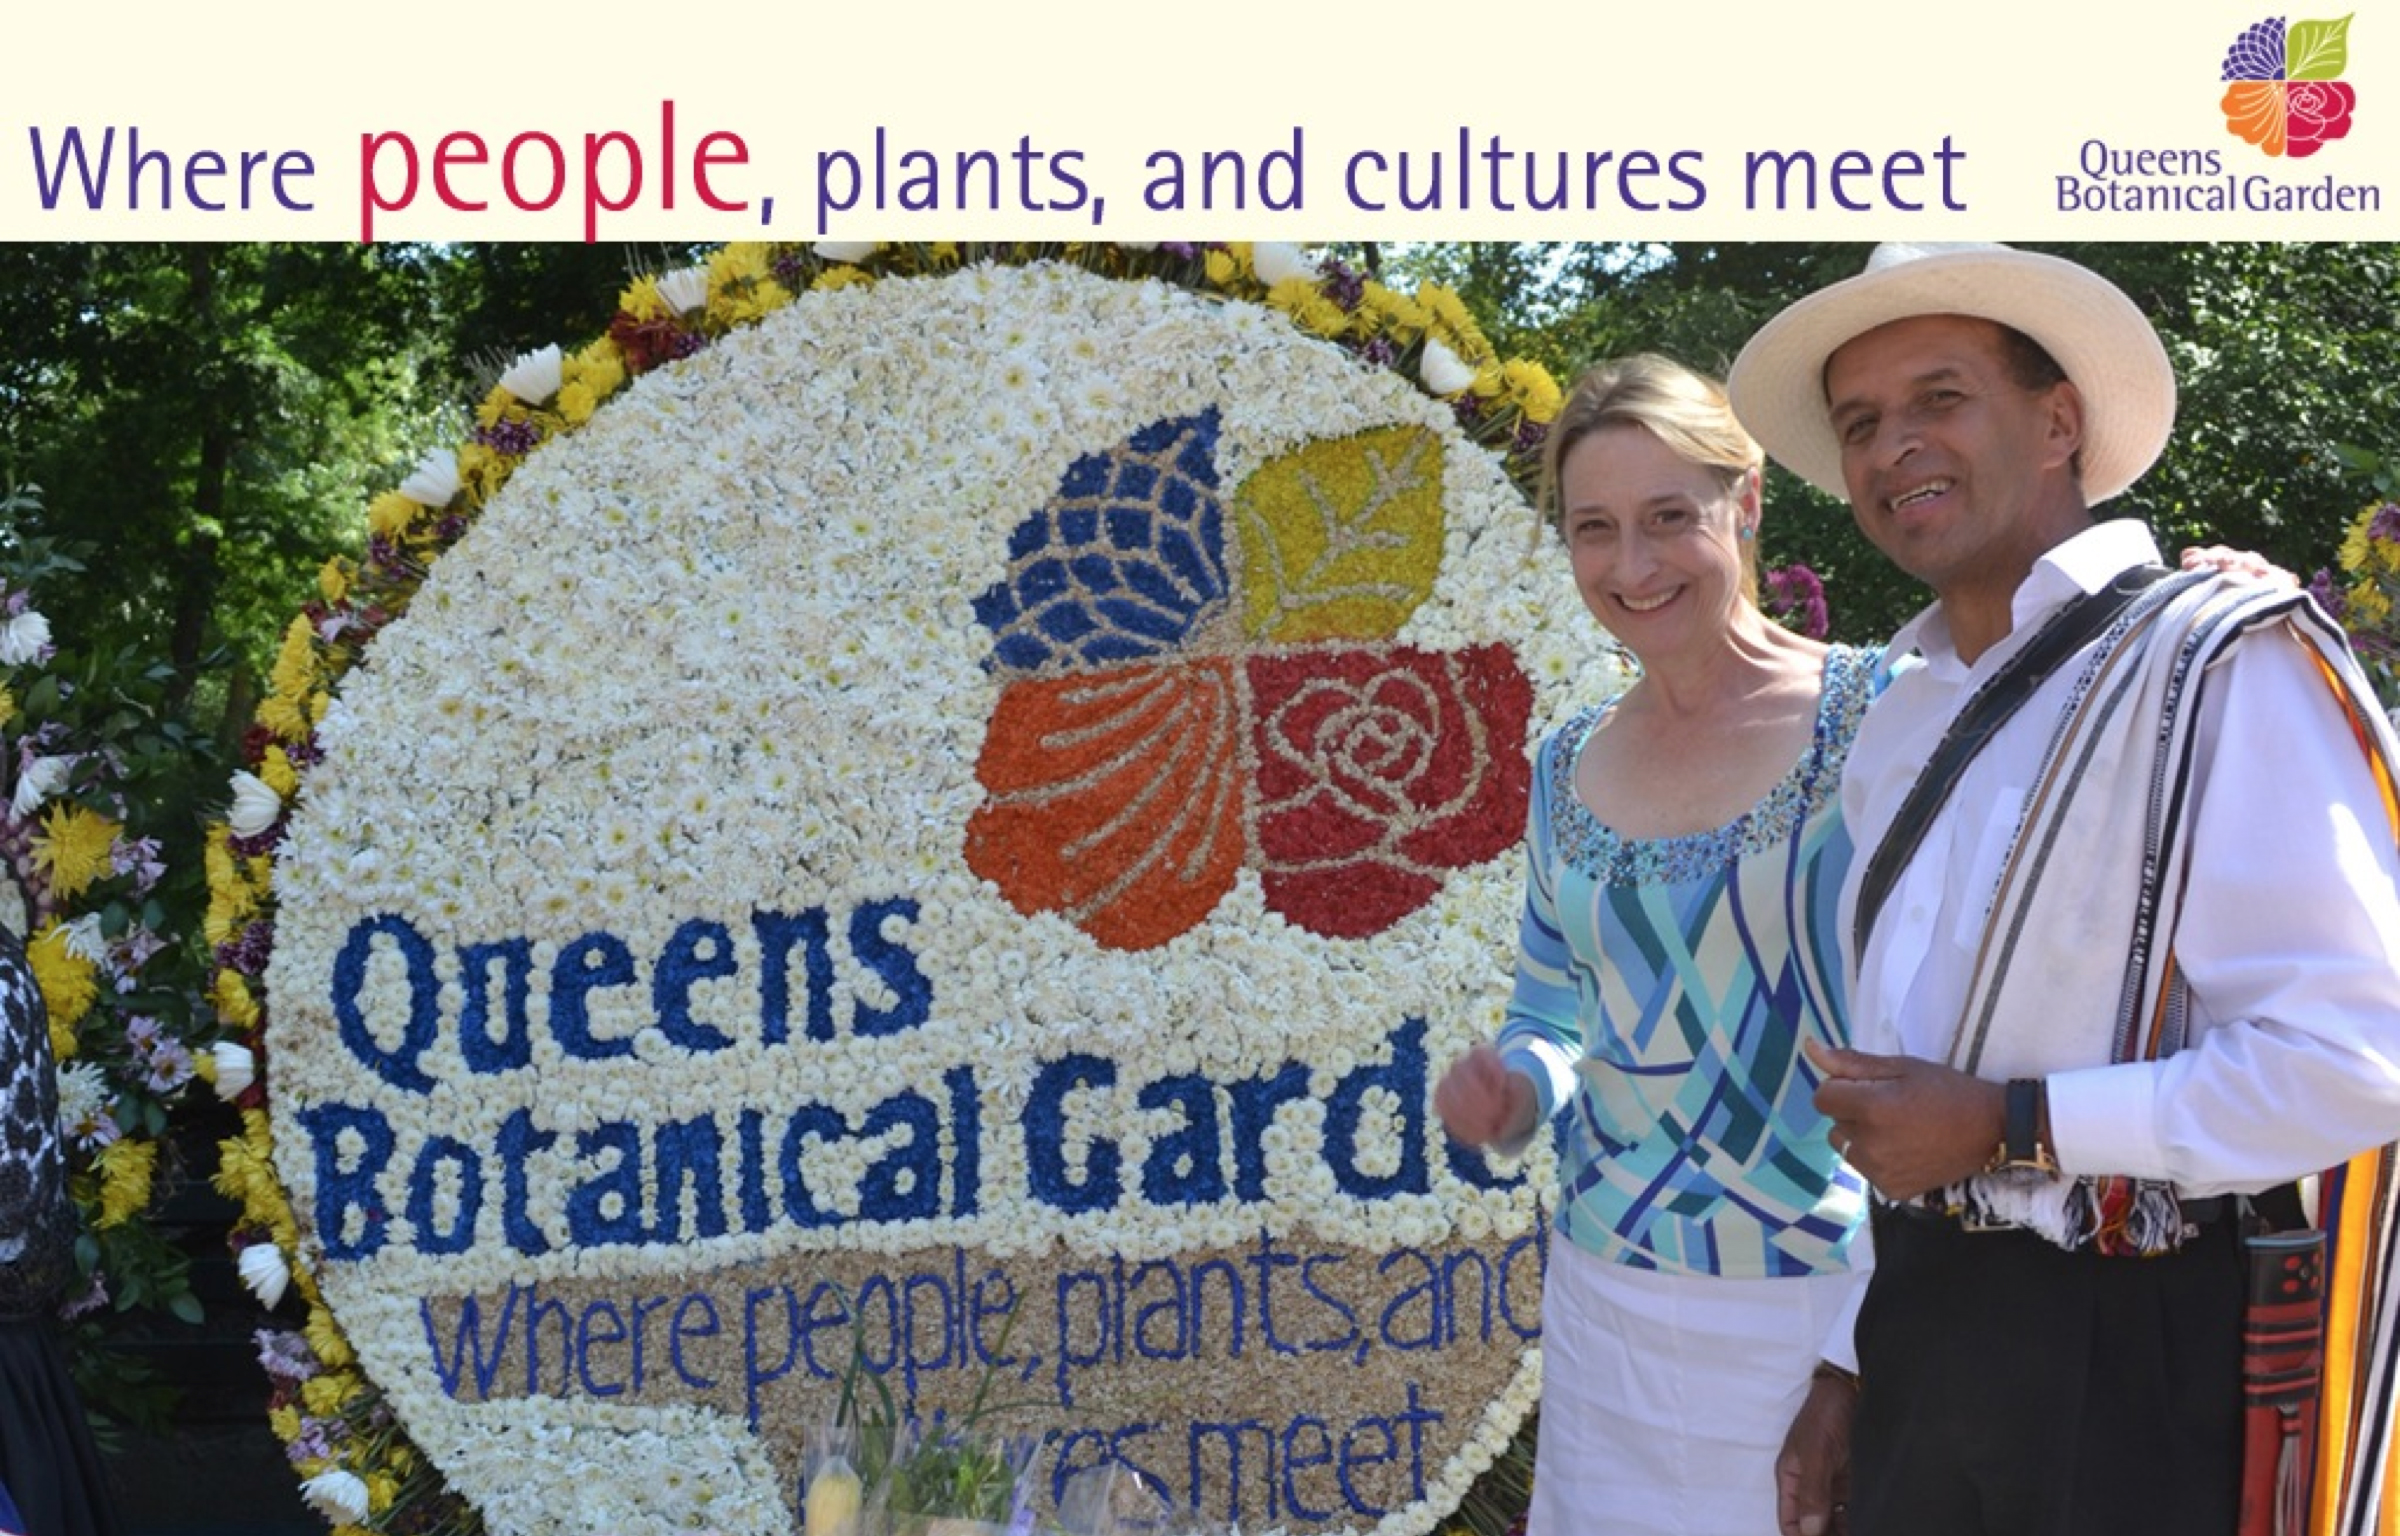 Queens Botanical Garden supports the community